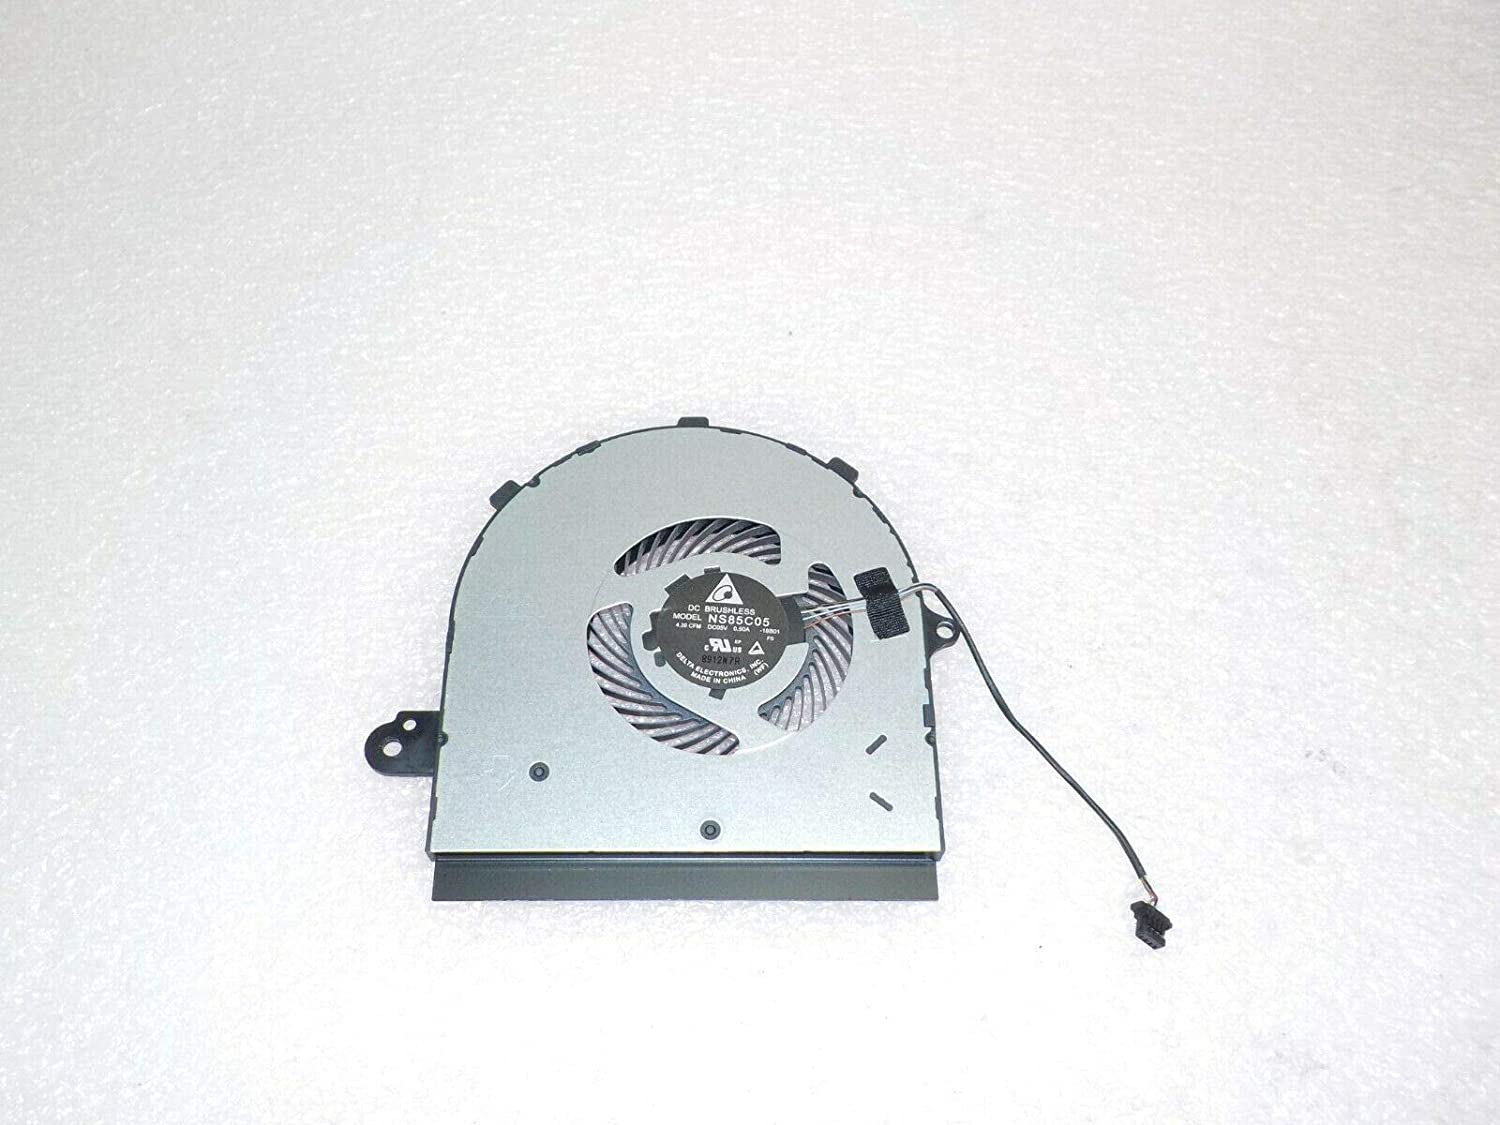 New Laptop CPU Cooling Fan Replacement for Dell Inspiron 7786 2-in-1 P36E I7786-7199SLV-PUS P//N:0GCN3G GCN3G